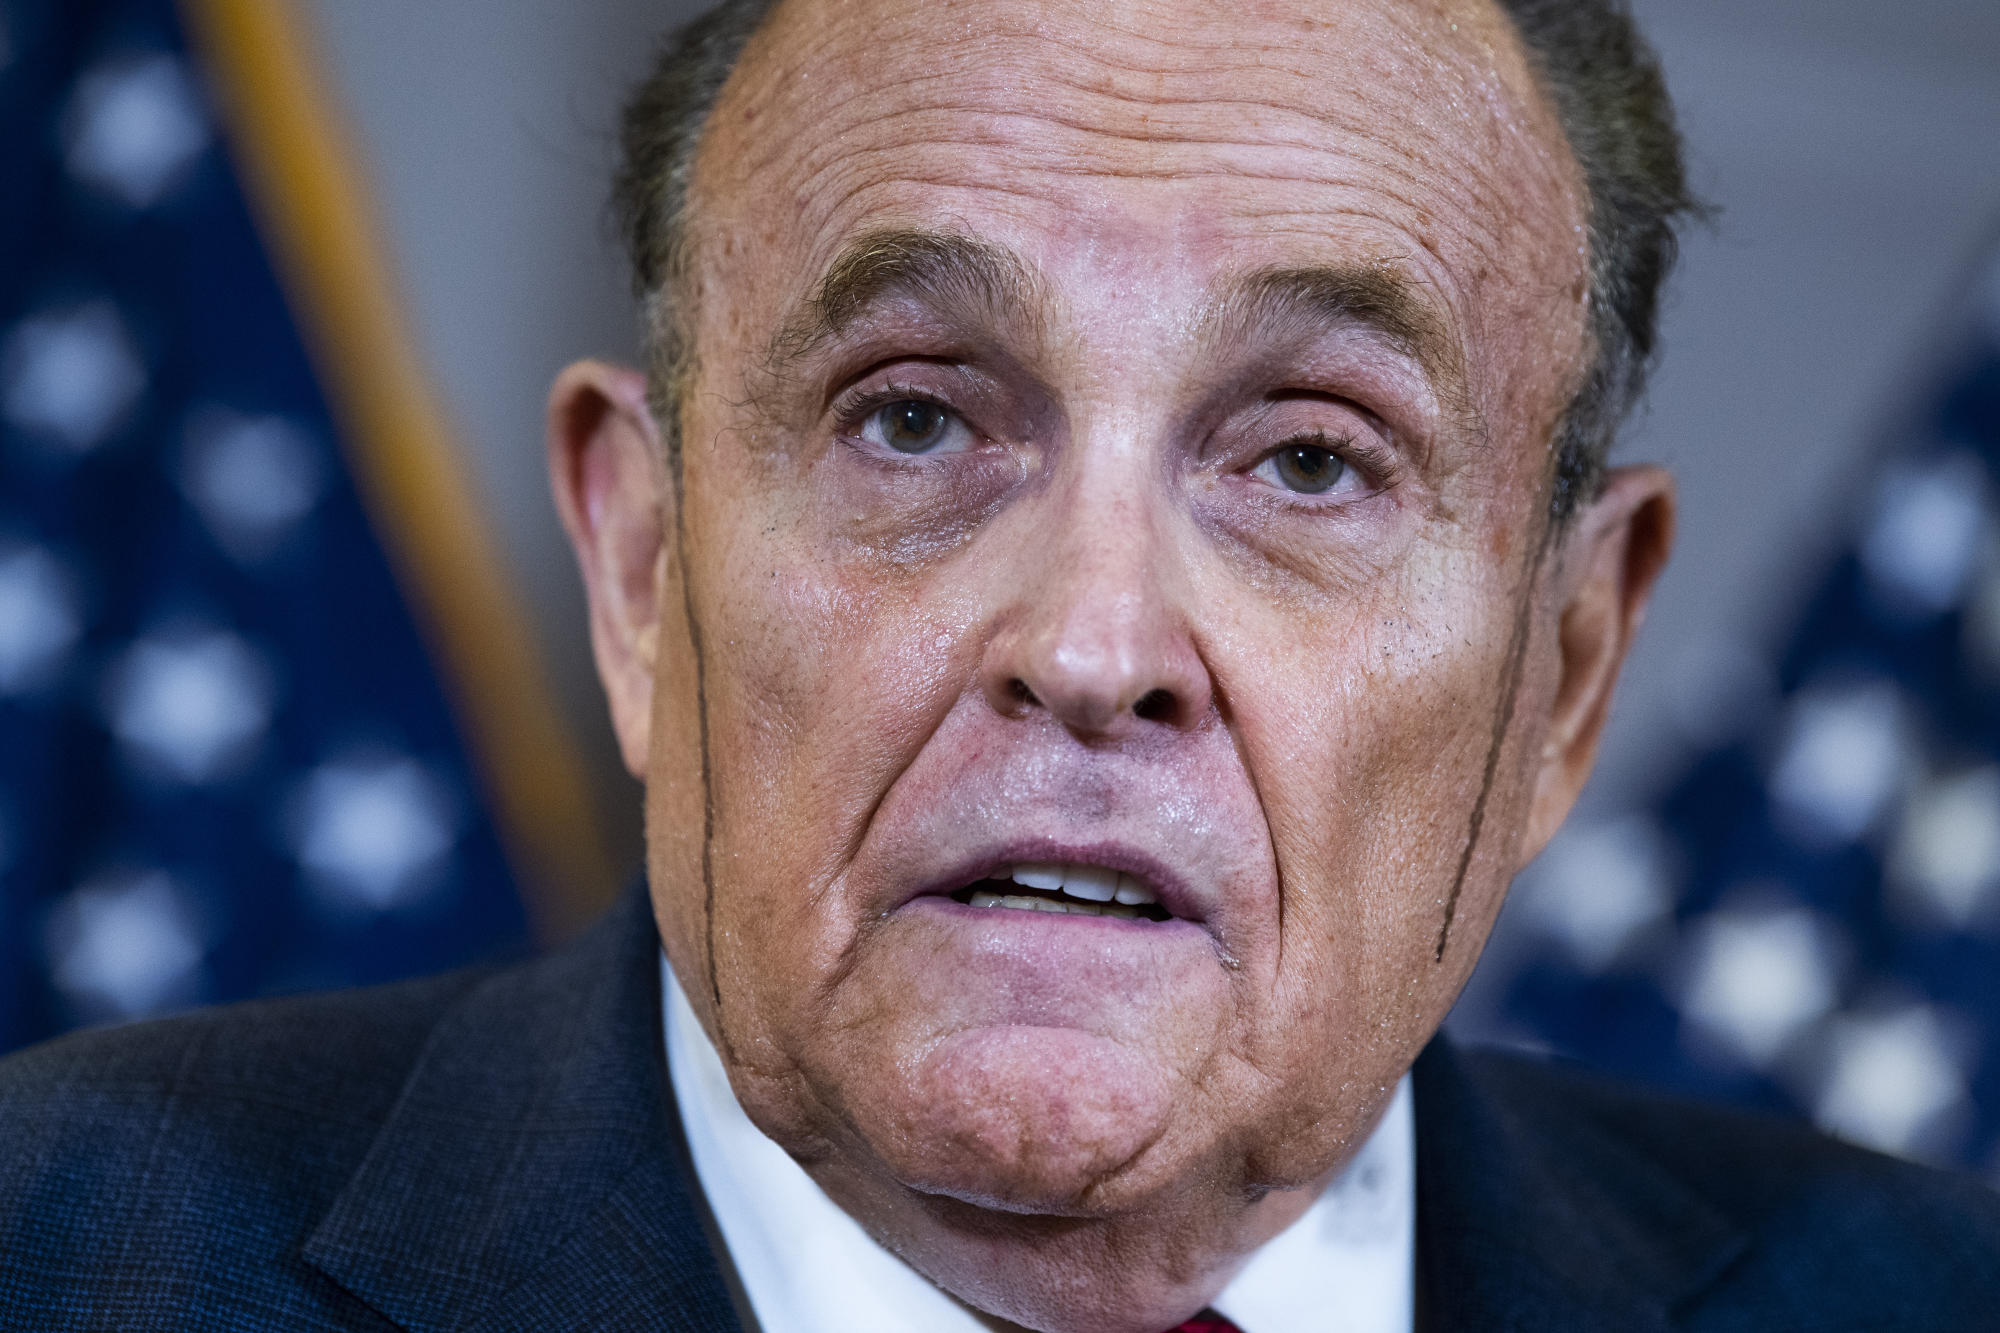 Rudy Giuliani suspended from practicing law in N.Y. over false 2020 election claims